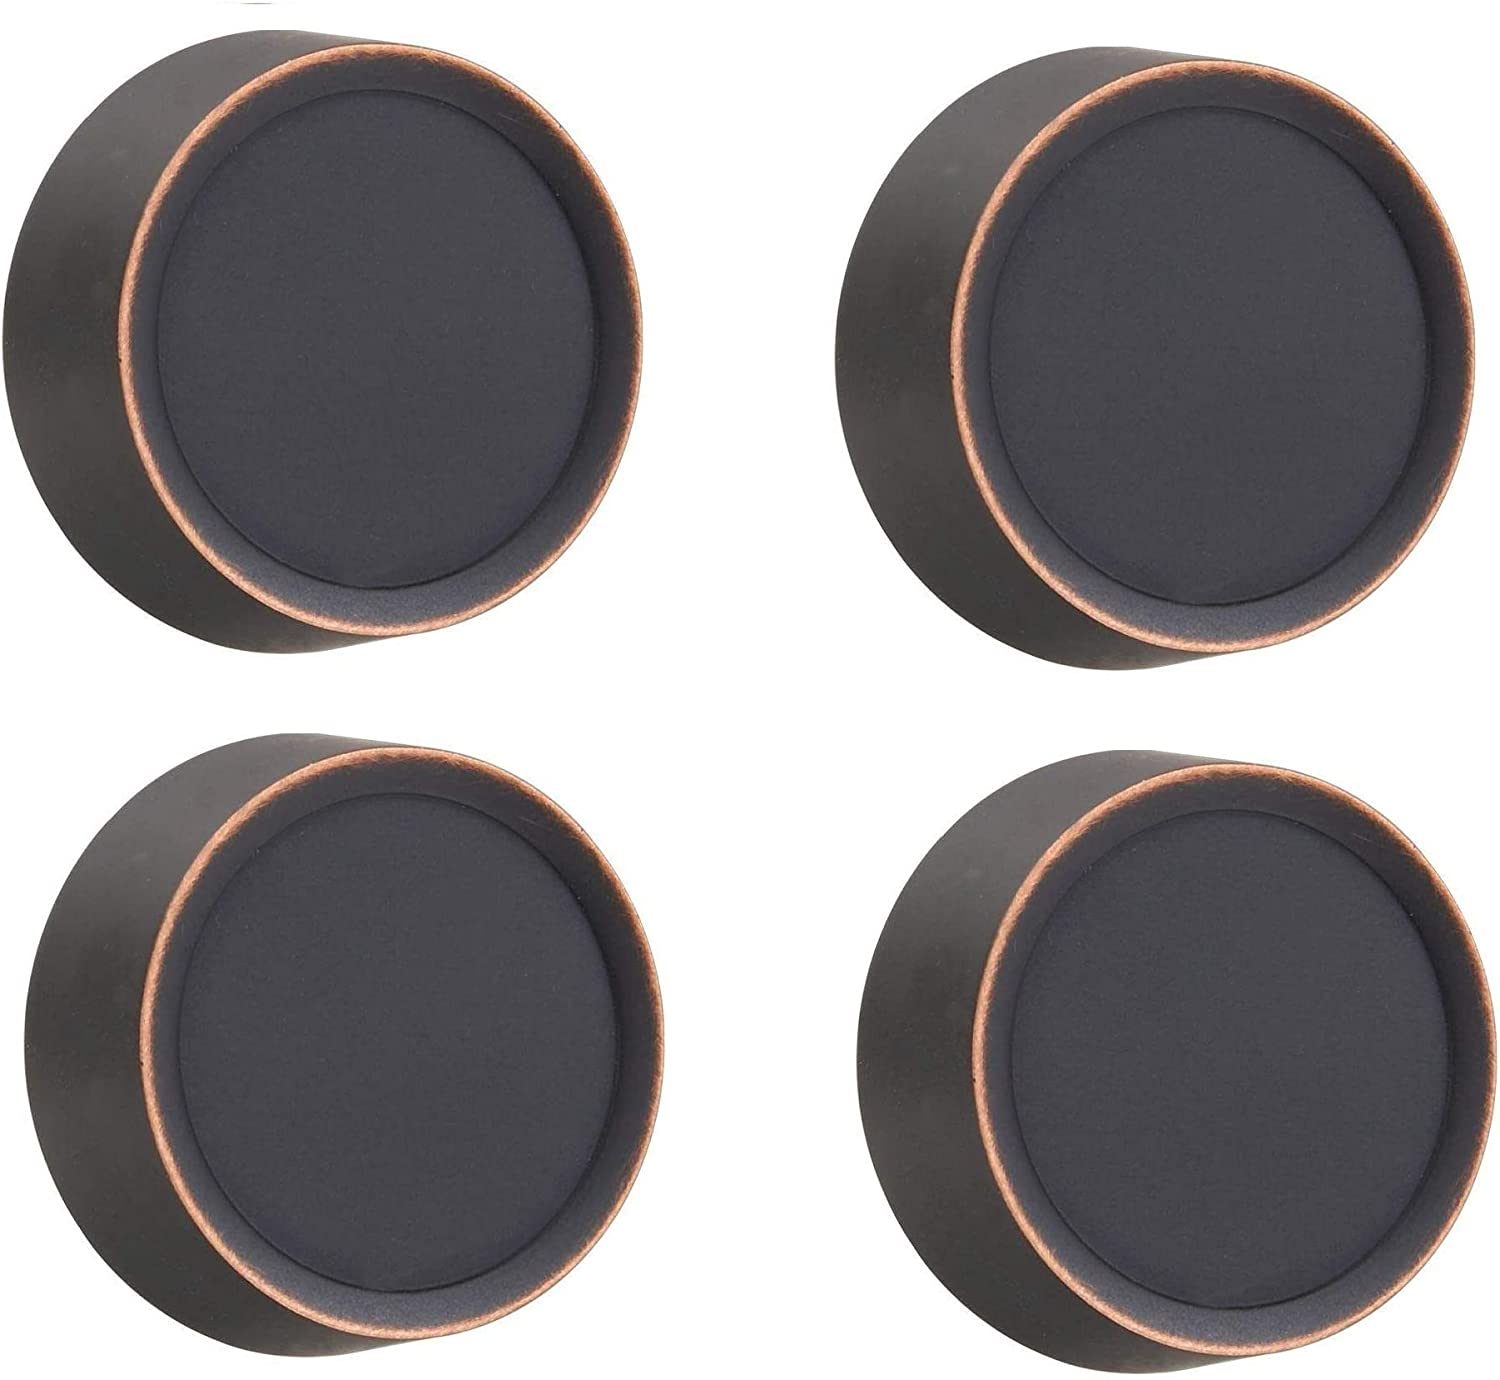 AMERELLE 947VB Dimmer Knob Wall Plate, Metallic|Aged Bronze, Sold as 4 Pack